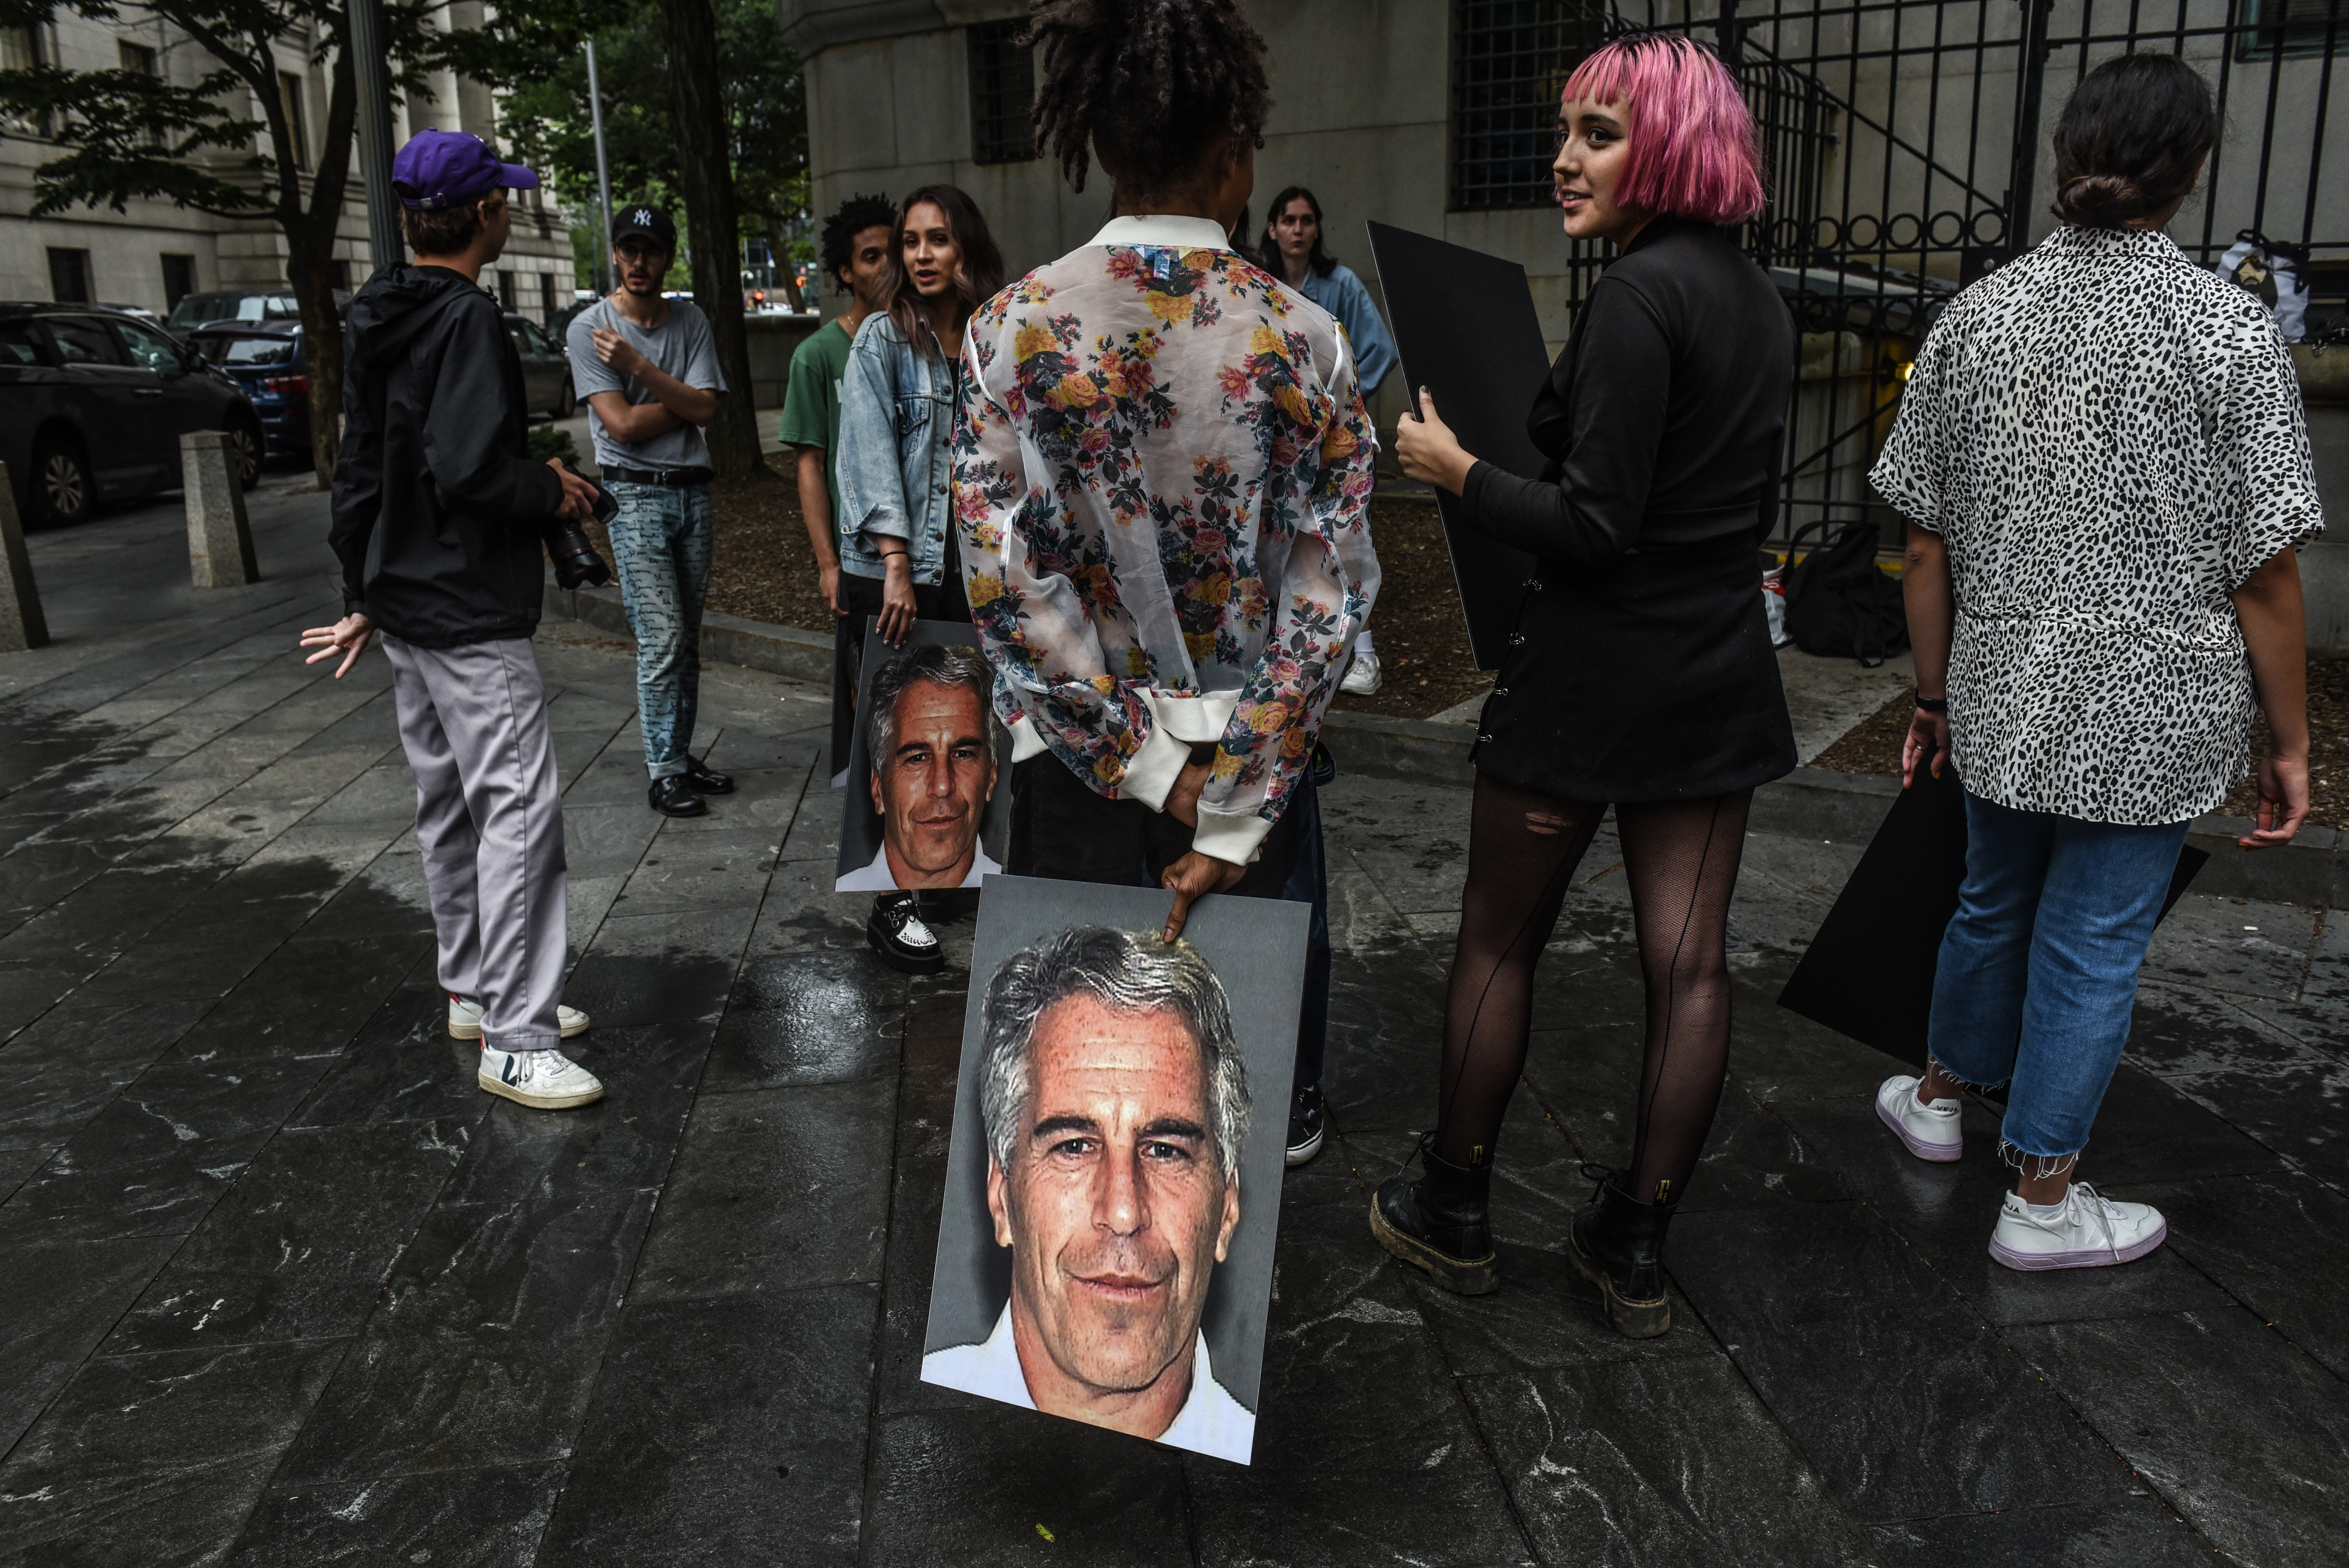 Jeffrey Epstein used MIT to launder his image. It's a lesson for the #MeToo era.